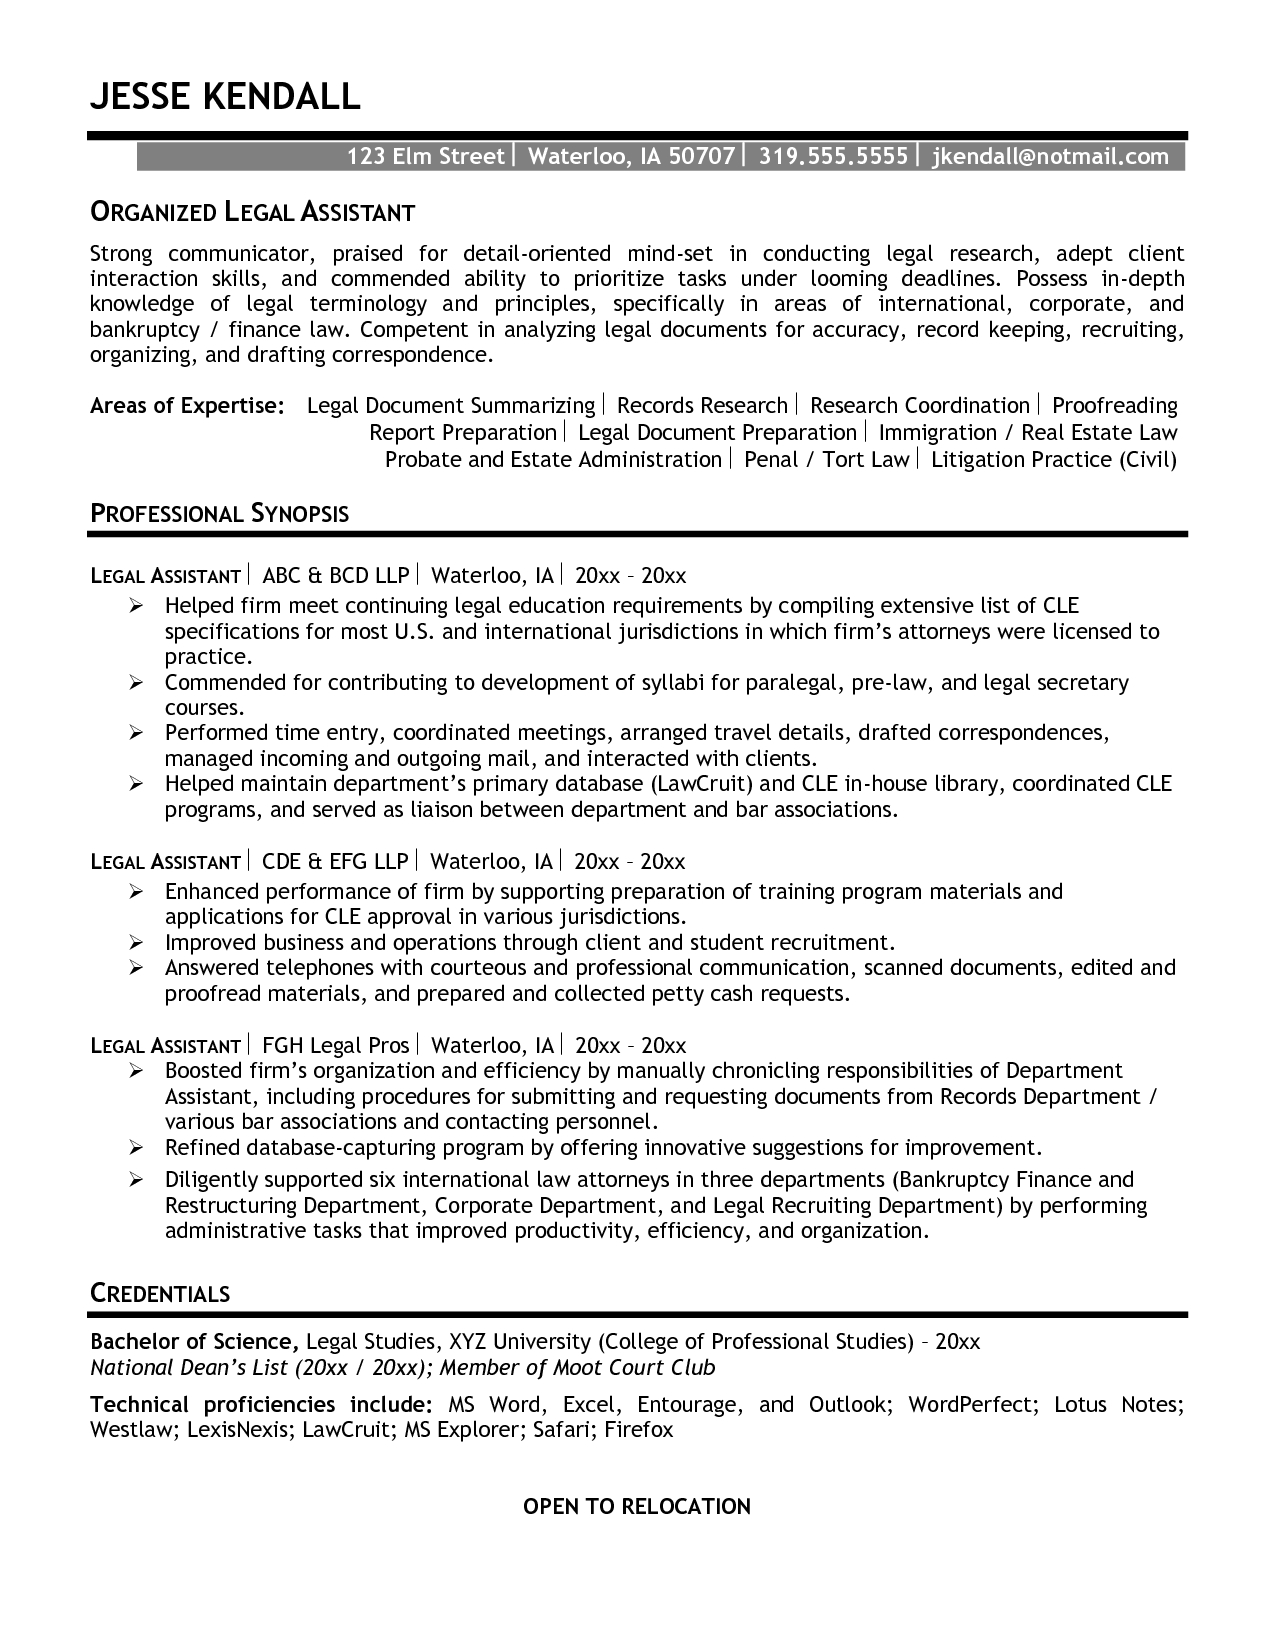 Resume Military Logistics Officer An Essay About Love Marriage